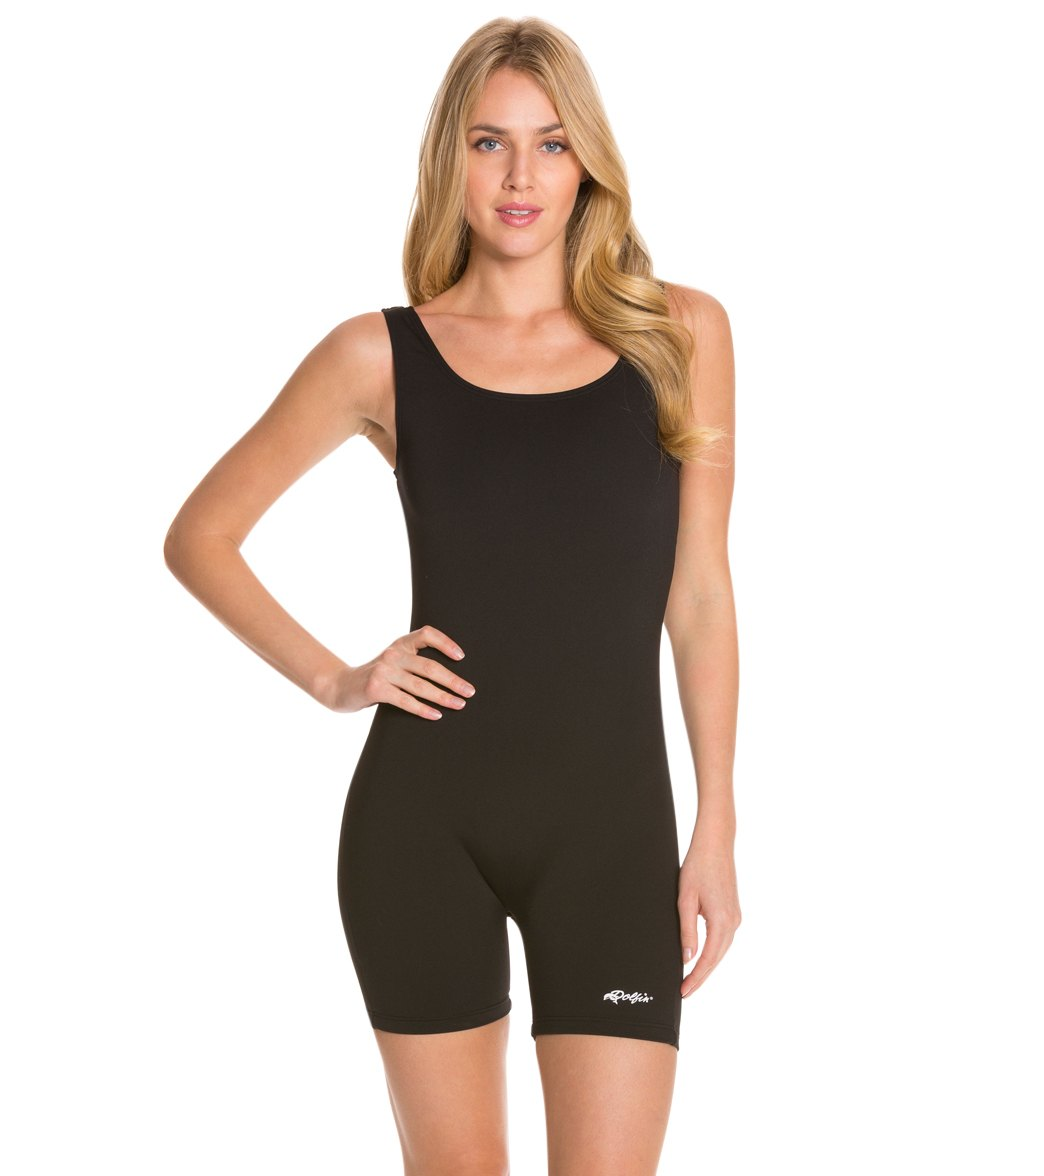 ef42a1d65 Ocean by Dolfin AquaShape Aquatard Unitard at SwimOutlet.com - Free Shipping